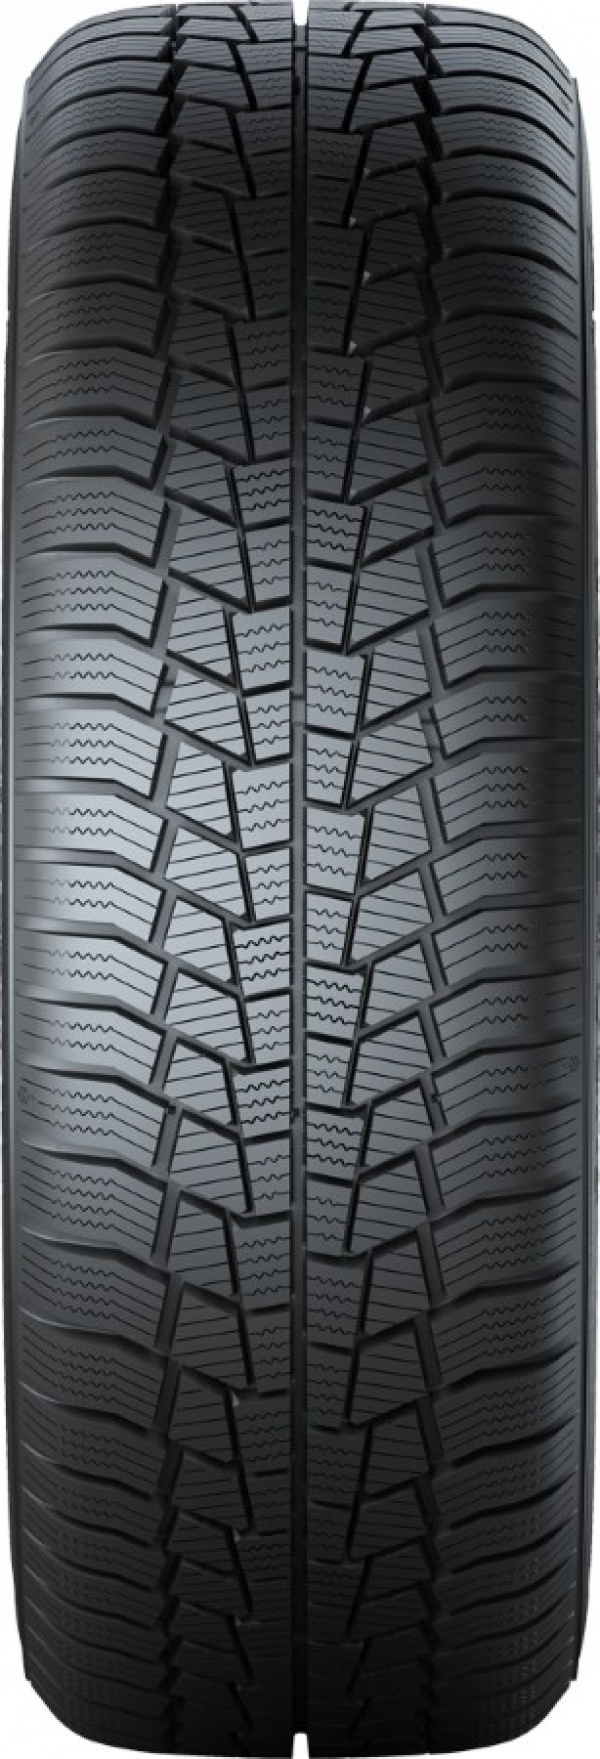 Gislaved Euro Frost 6 225/55 R16 99H  не шип